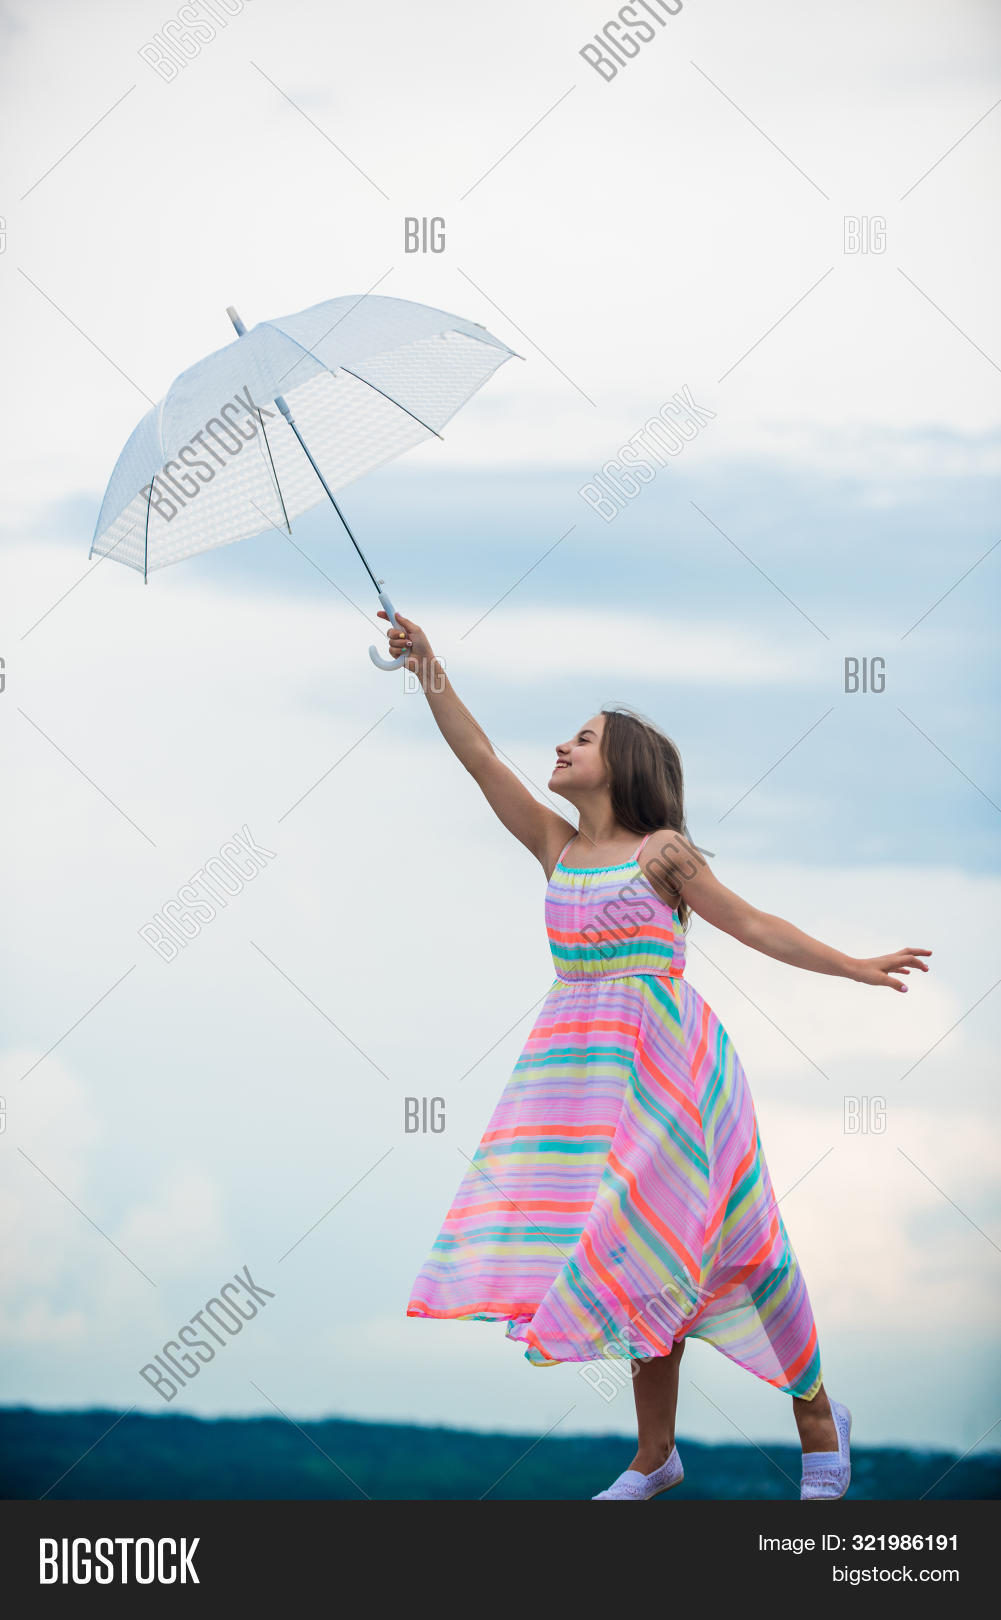 about,accessory,adorable,anti,autumn,believe,can,character,child,childhood,climate,concept,cute,dreaming,drop,enjoy,fall,fashion,feeling,first,flight,fly,forecast,fun,girl,gravitation,happy,i,joyful,kid,light,little,love,parachute,pleasant,pretending,protection,rain,rainy,sky,small,tale,touch,umbrella,weather